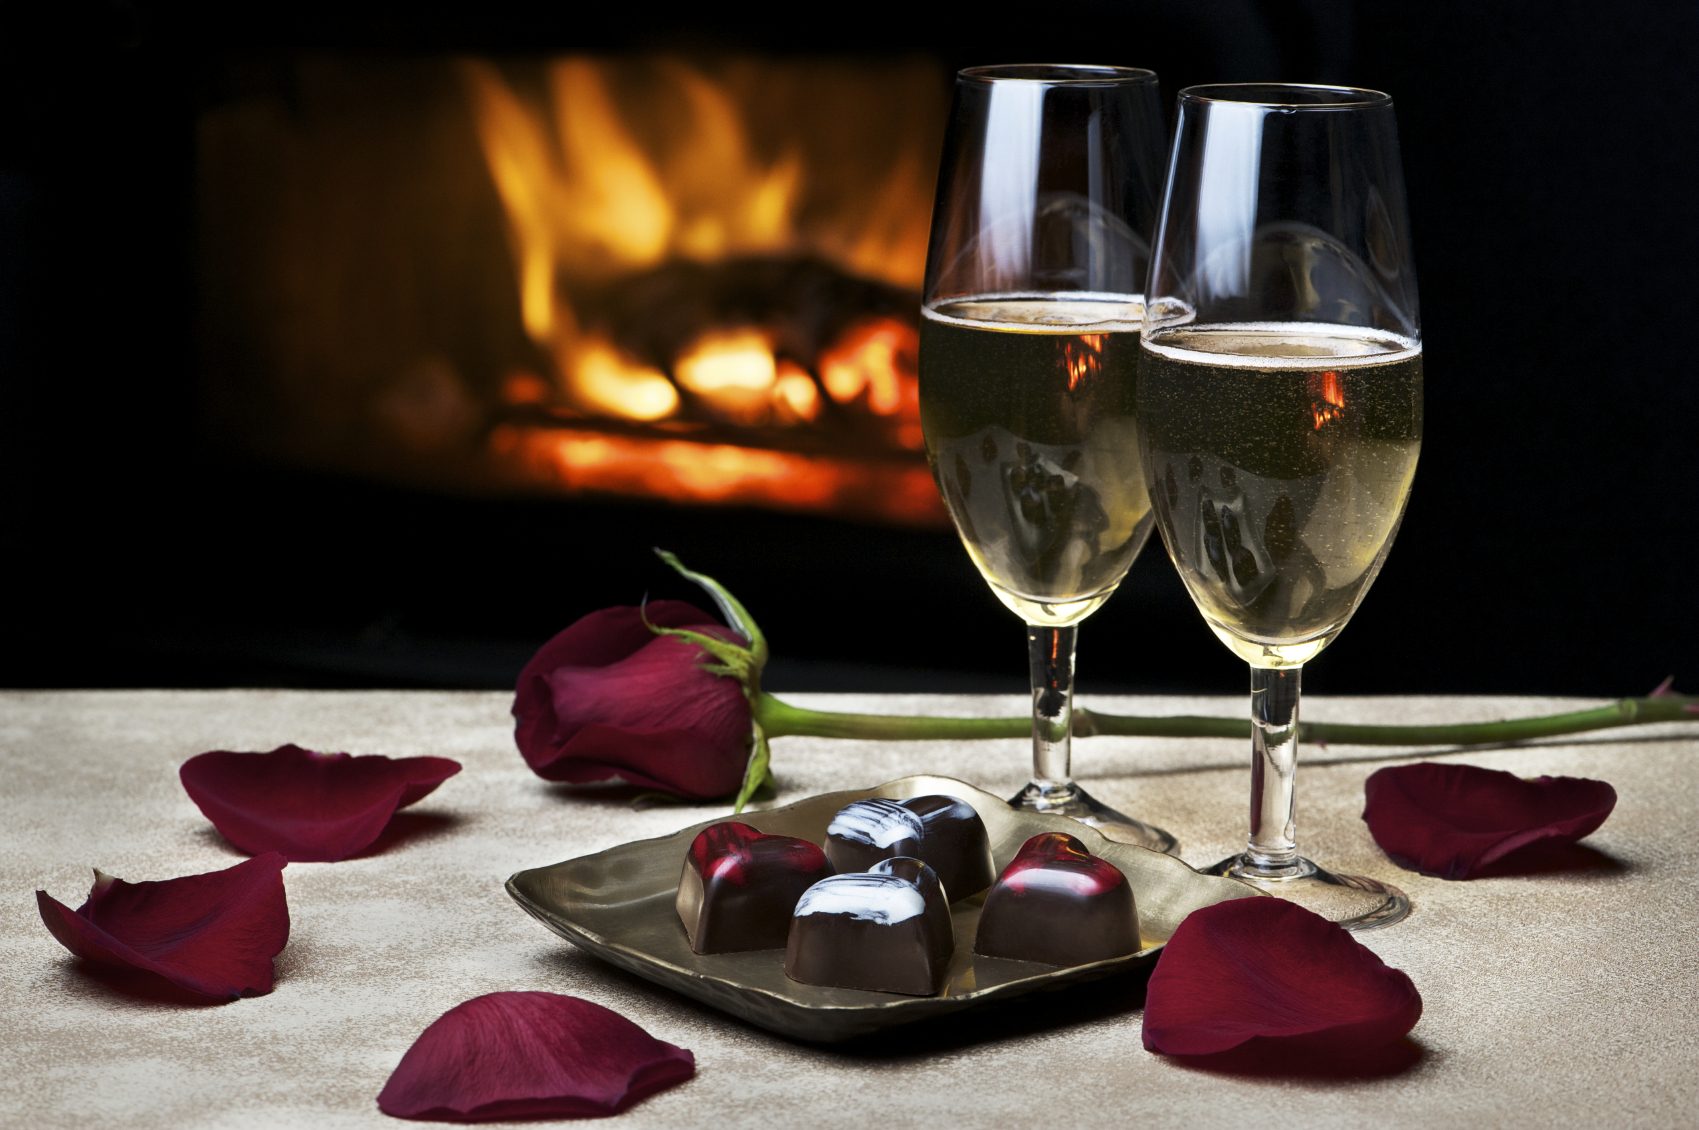 On a white table sits rose petals, 2 glasses of champagne, and a tray with four decadent chocolates.  In the background a fireplace burns in the fireplace.